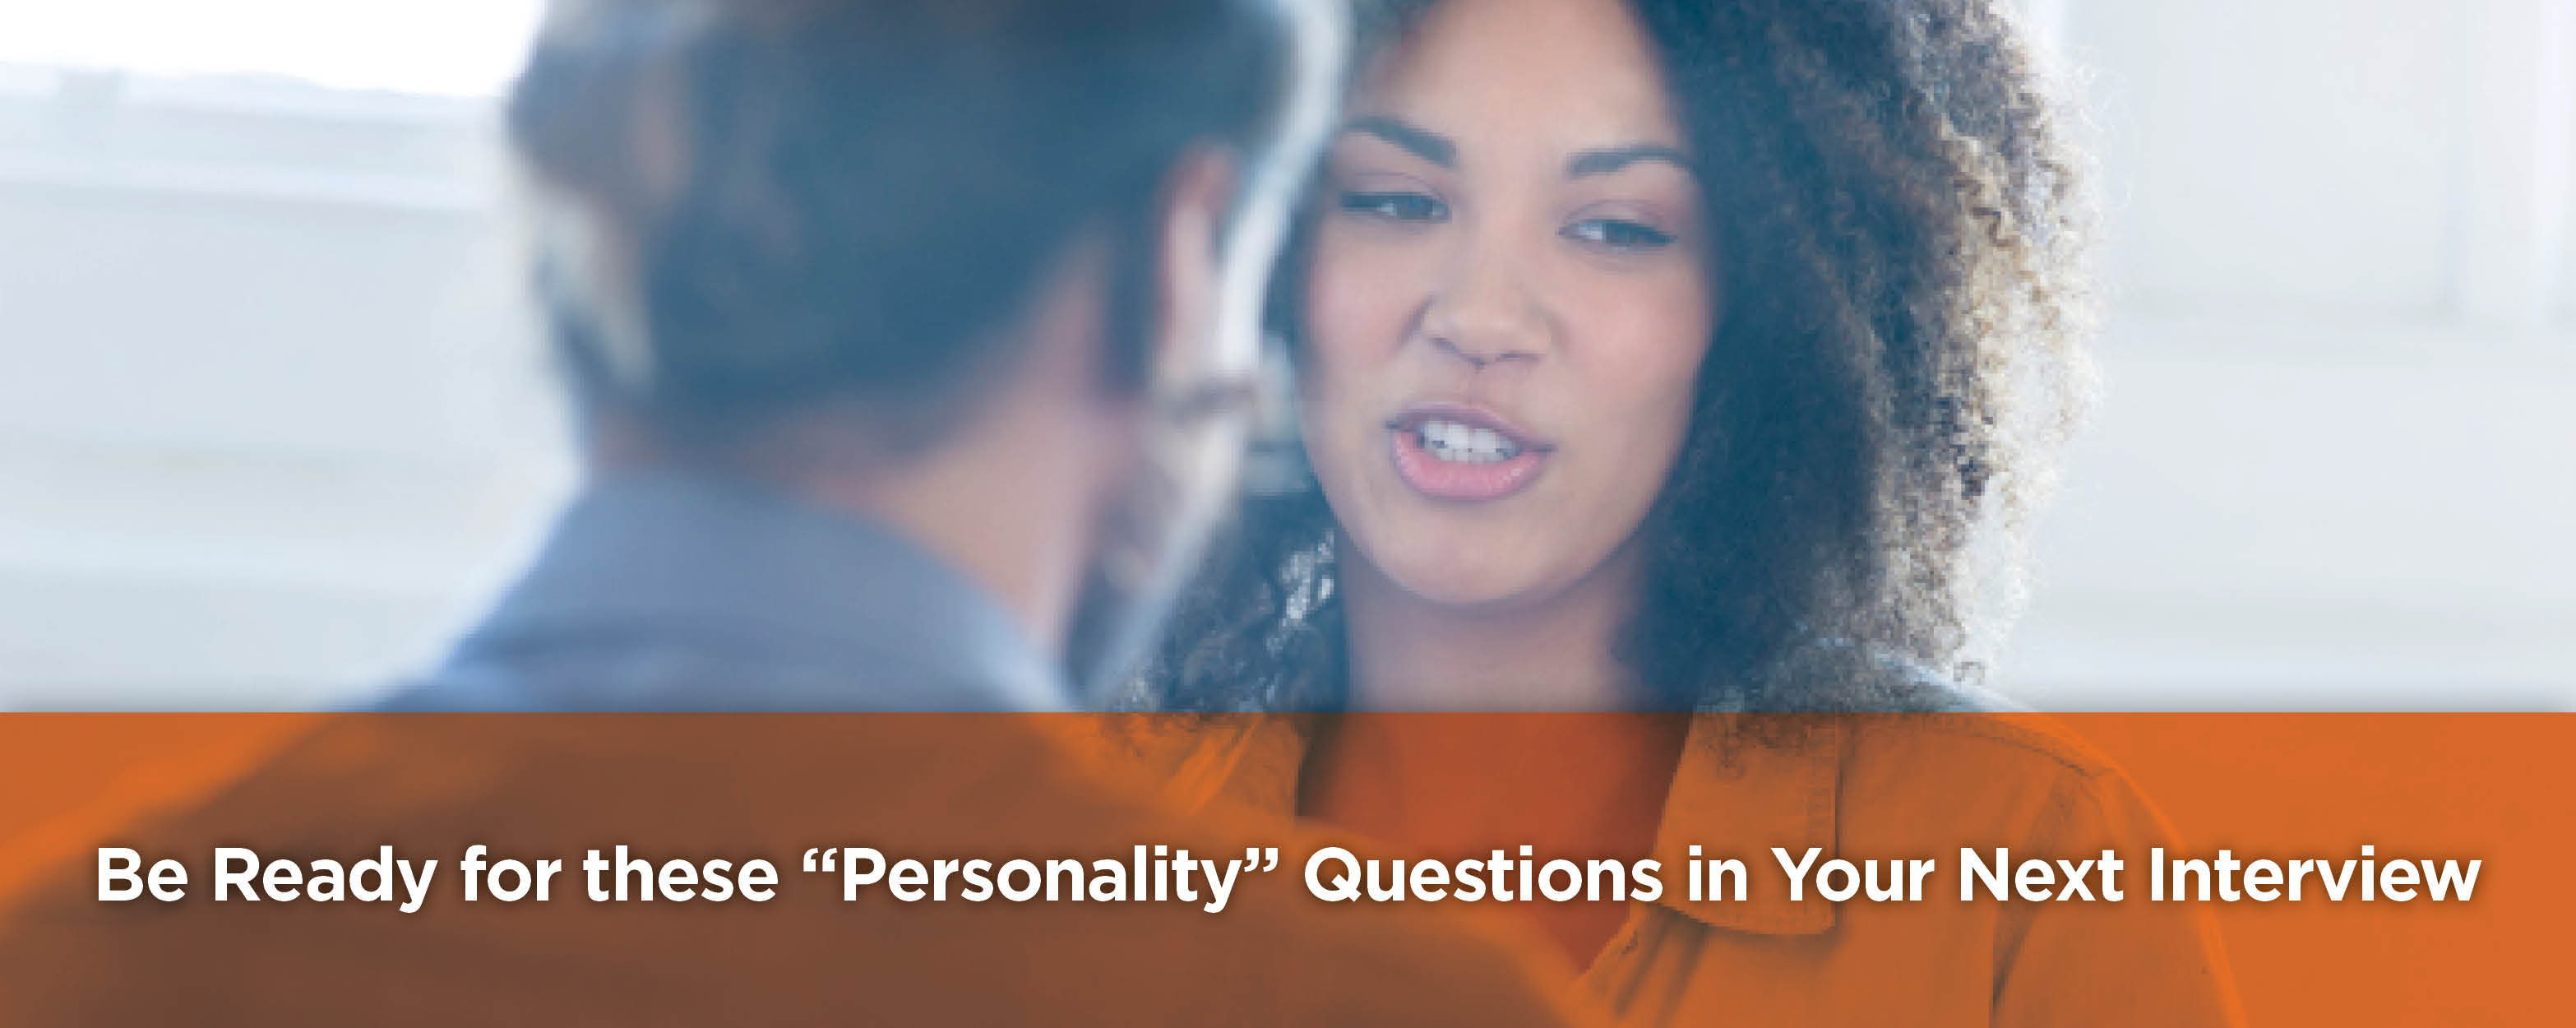 be ready for these personality questions in your next interview